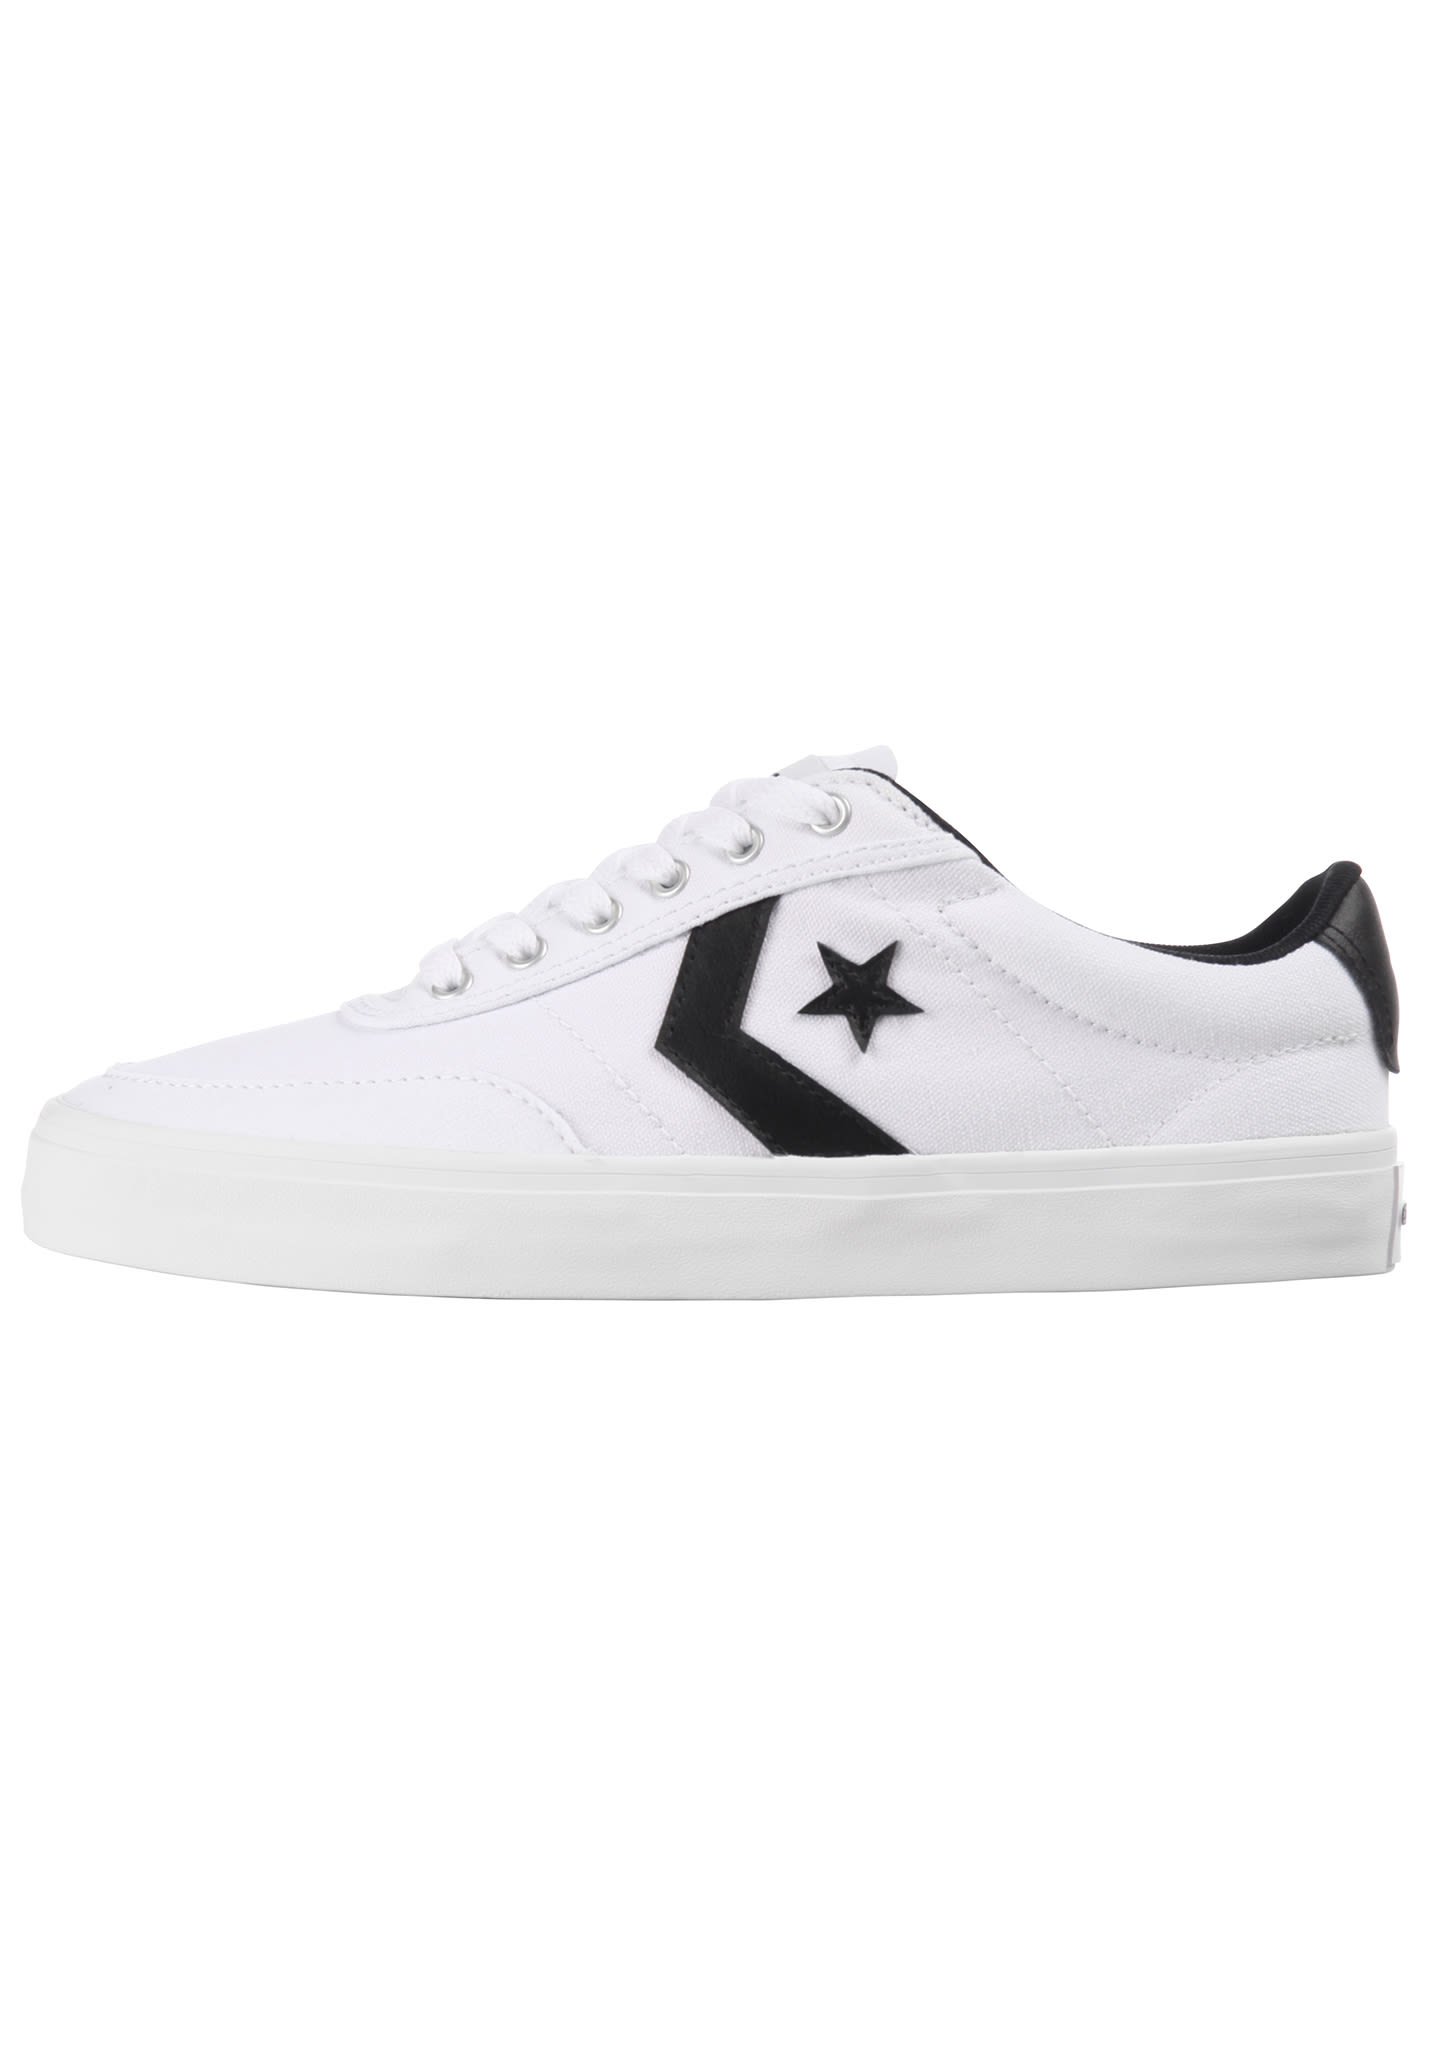 2ceb0ac90fc4 Converse Courtland OX - Sneakers for Men - White - Planet Sports